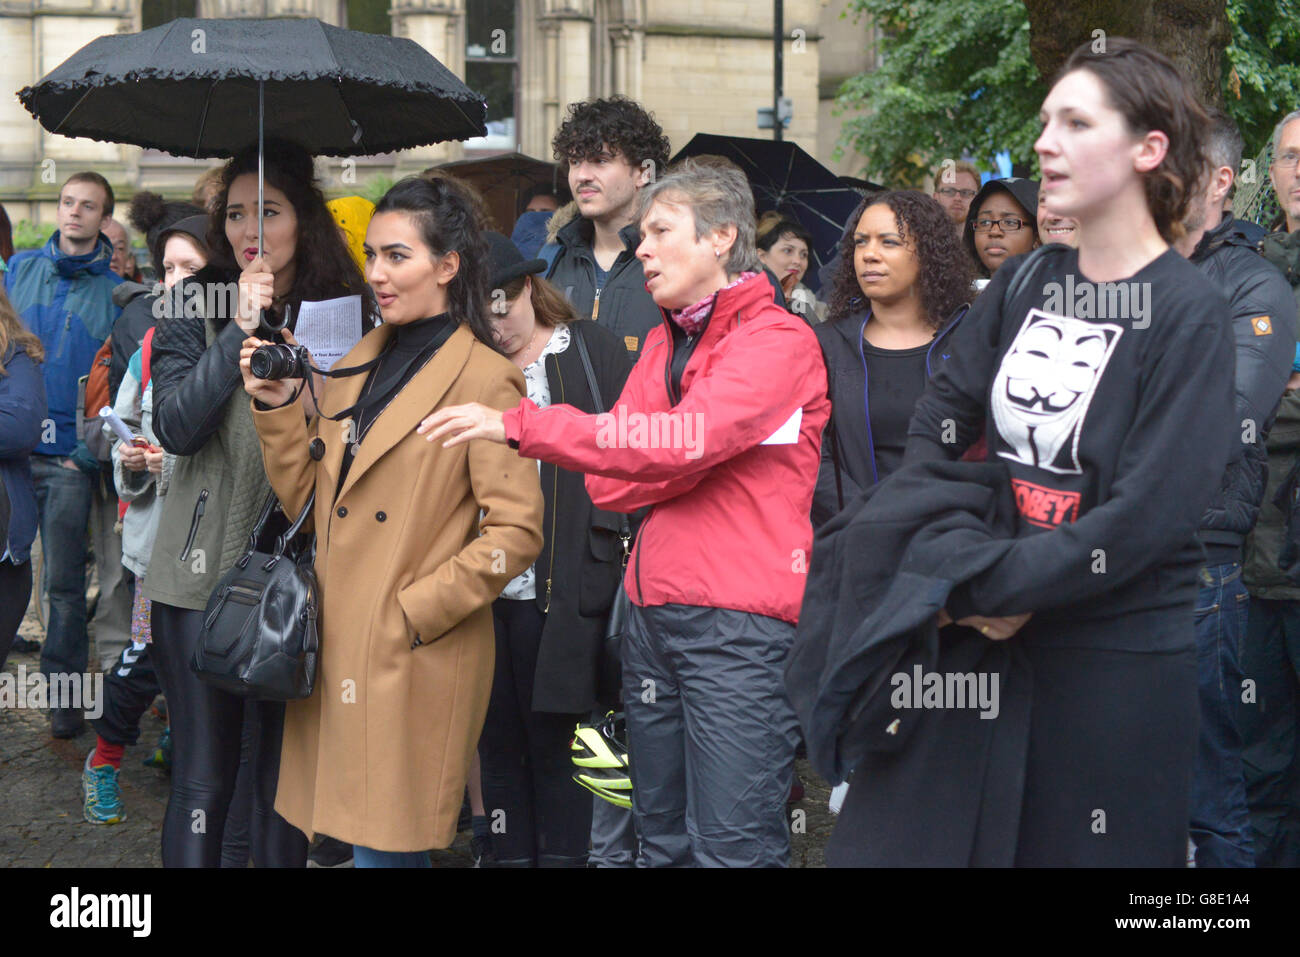 Manchester, UK. 28th June, 2016. People demonstrating to have the United Kingdom's European Union membership referendum Stock Photo